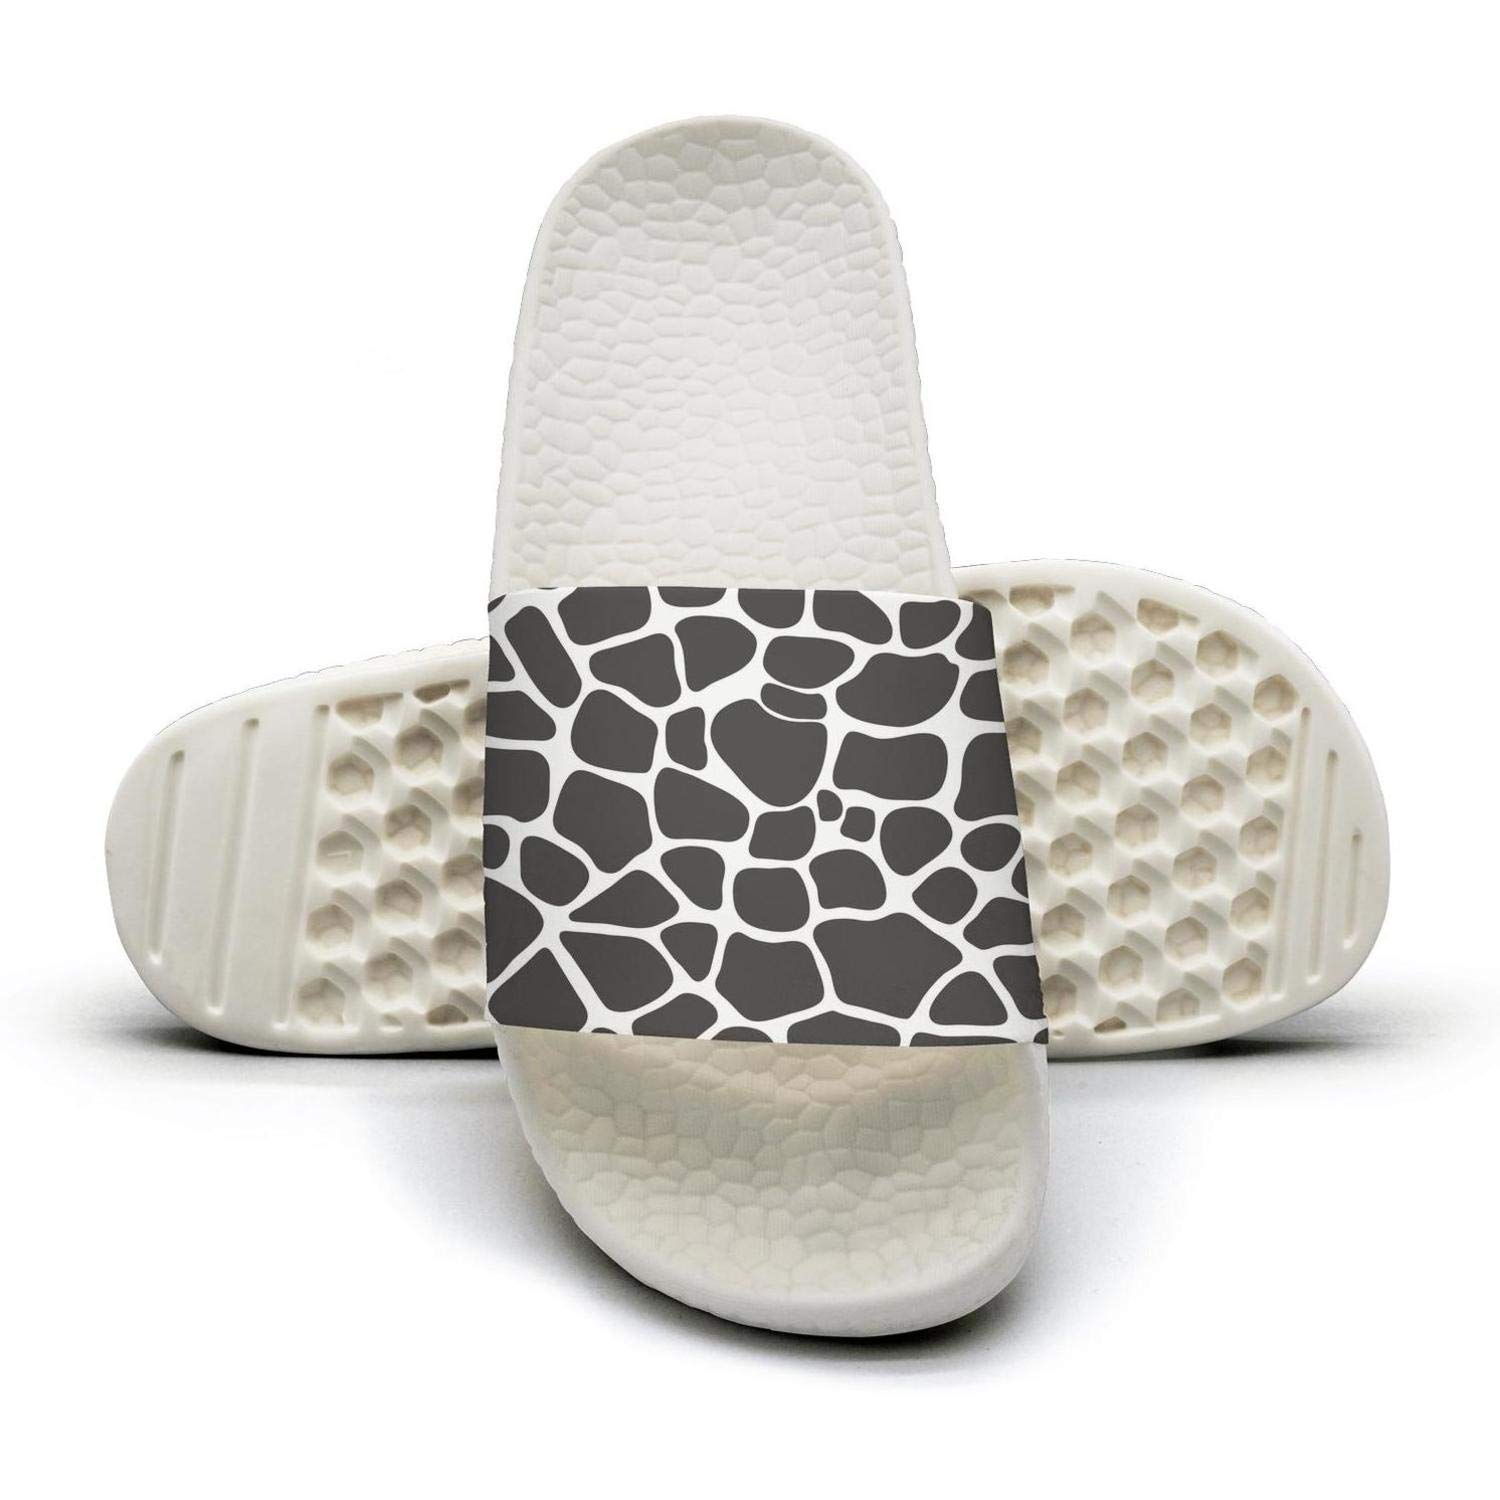 665e648bab286 Amazon.com  DONVE Man s Giraffe Party Time Flip Flop for Mens Customize  Slide Water Shoes  Sports   Outdoors